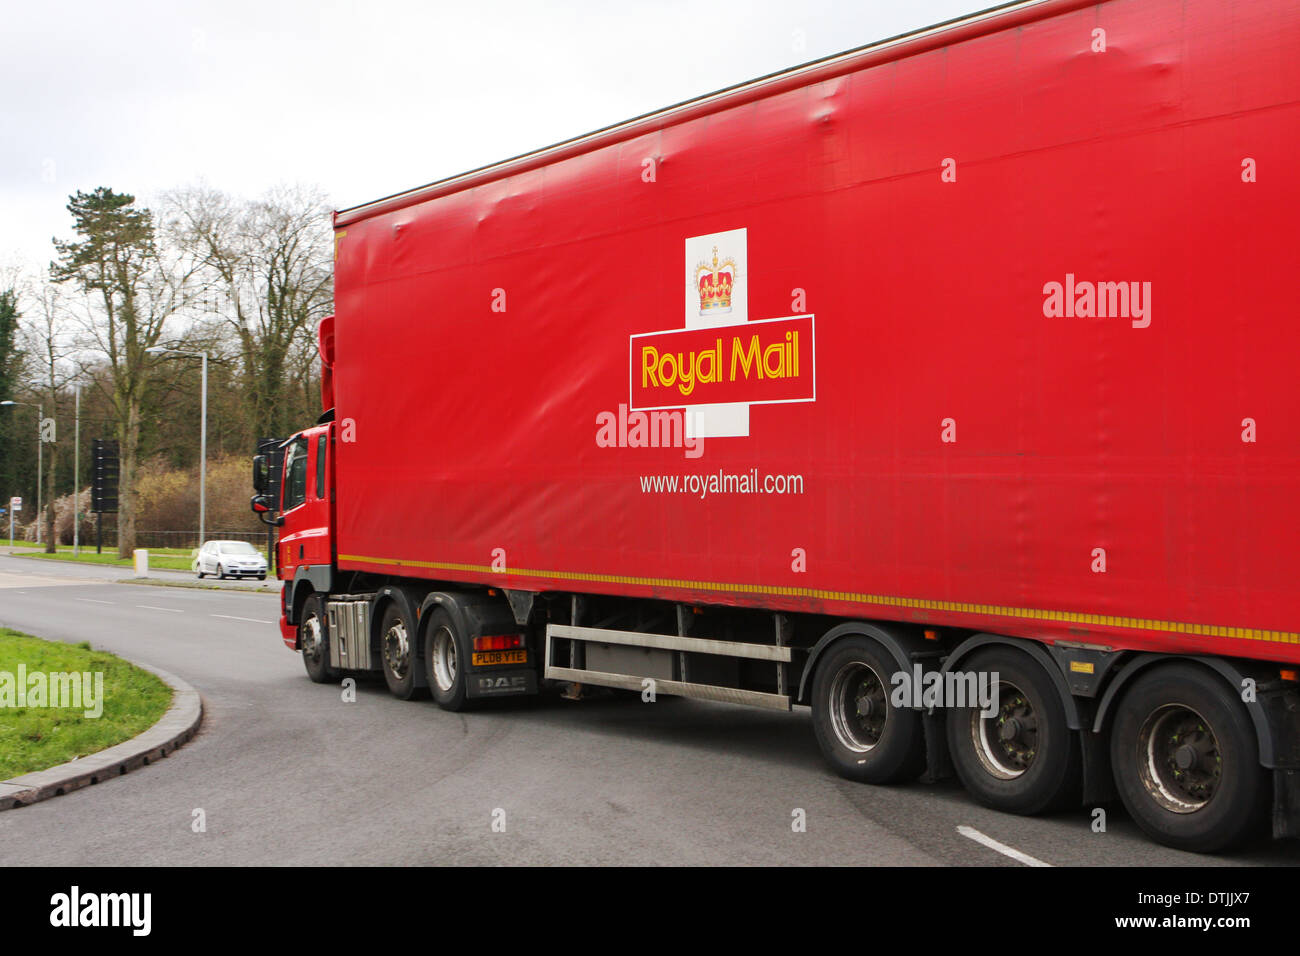 A truck traveling along a road in Coulsdon, Surrey, England - Stock Image